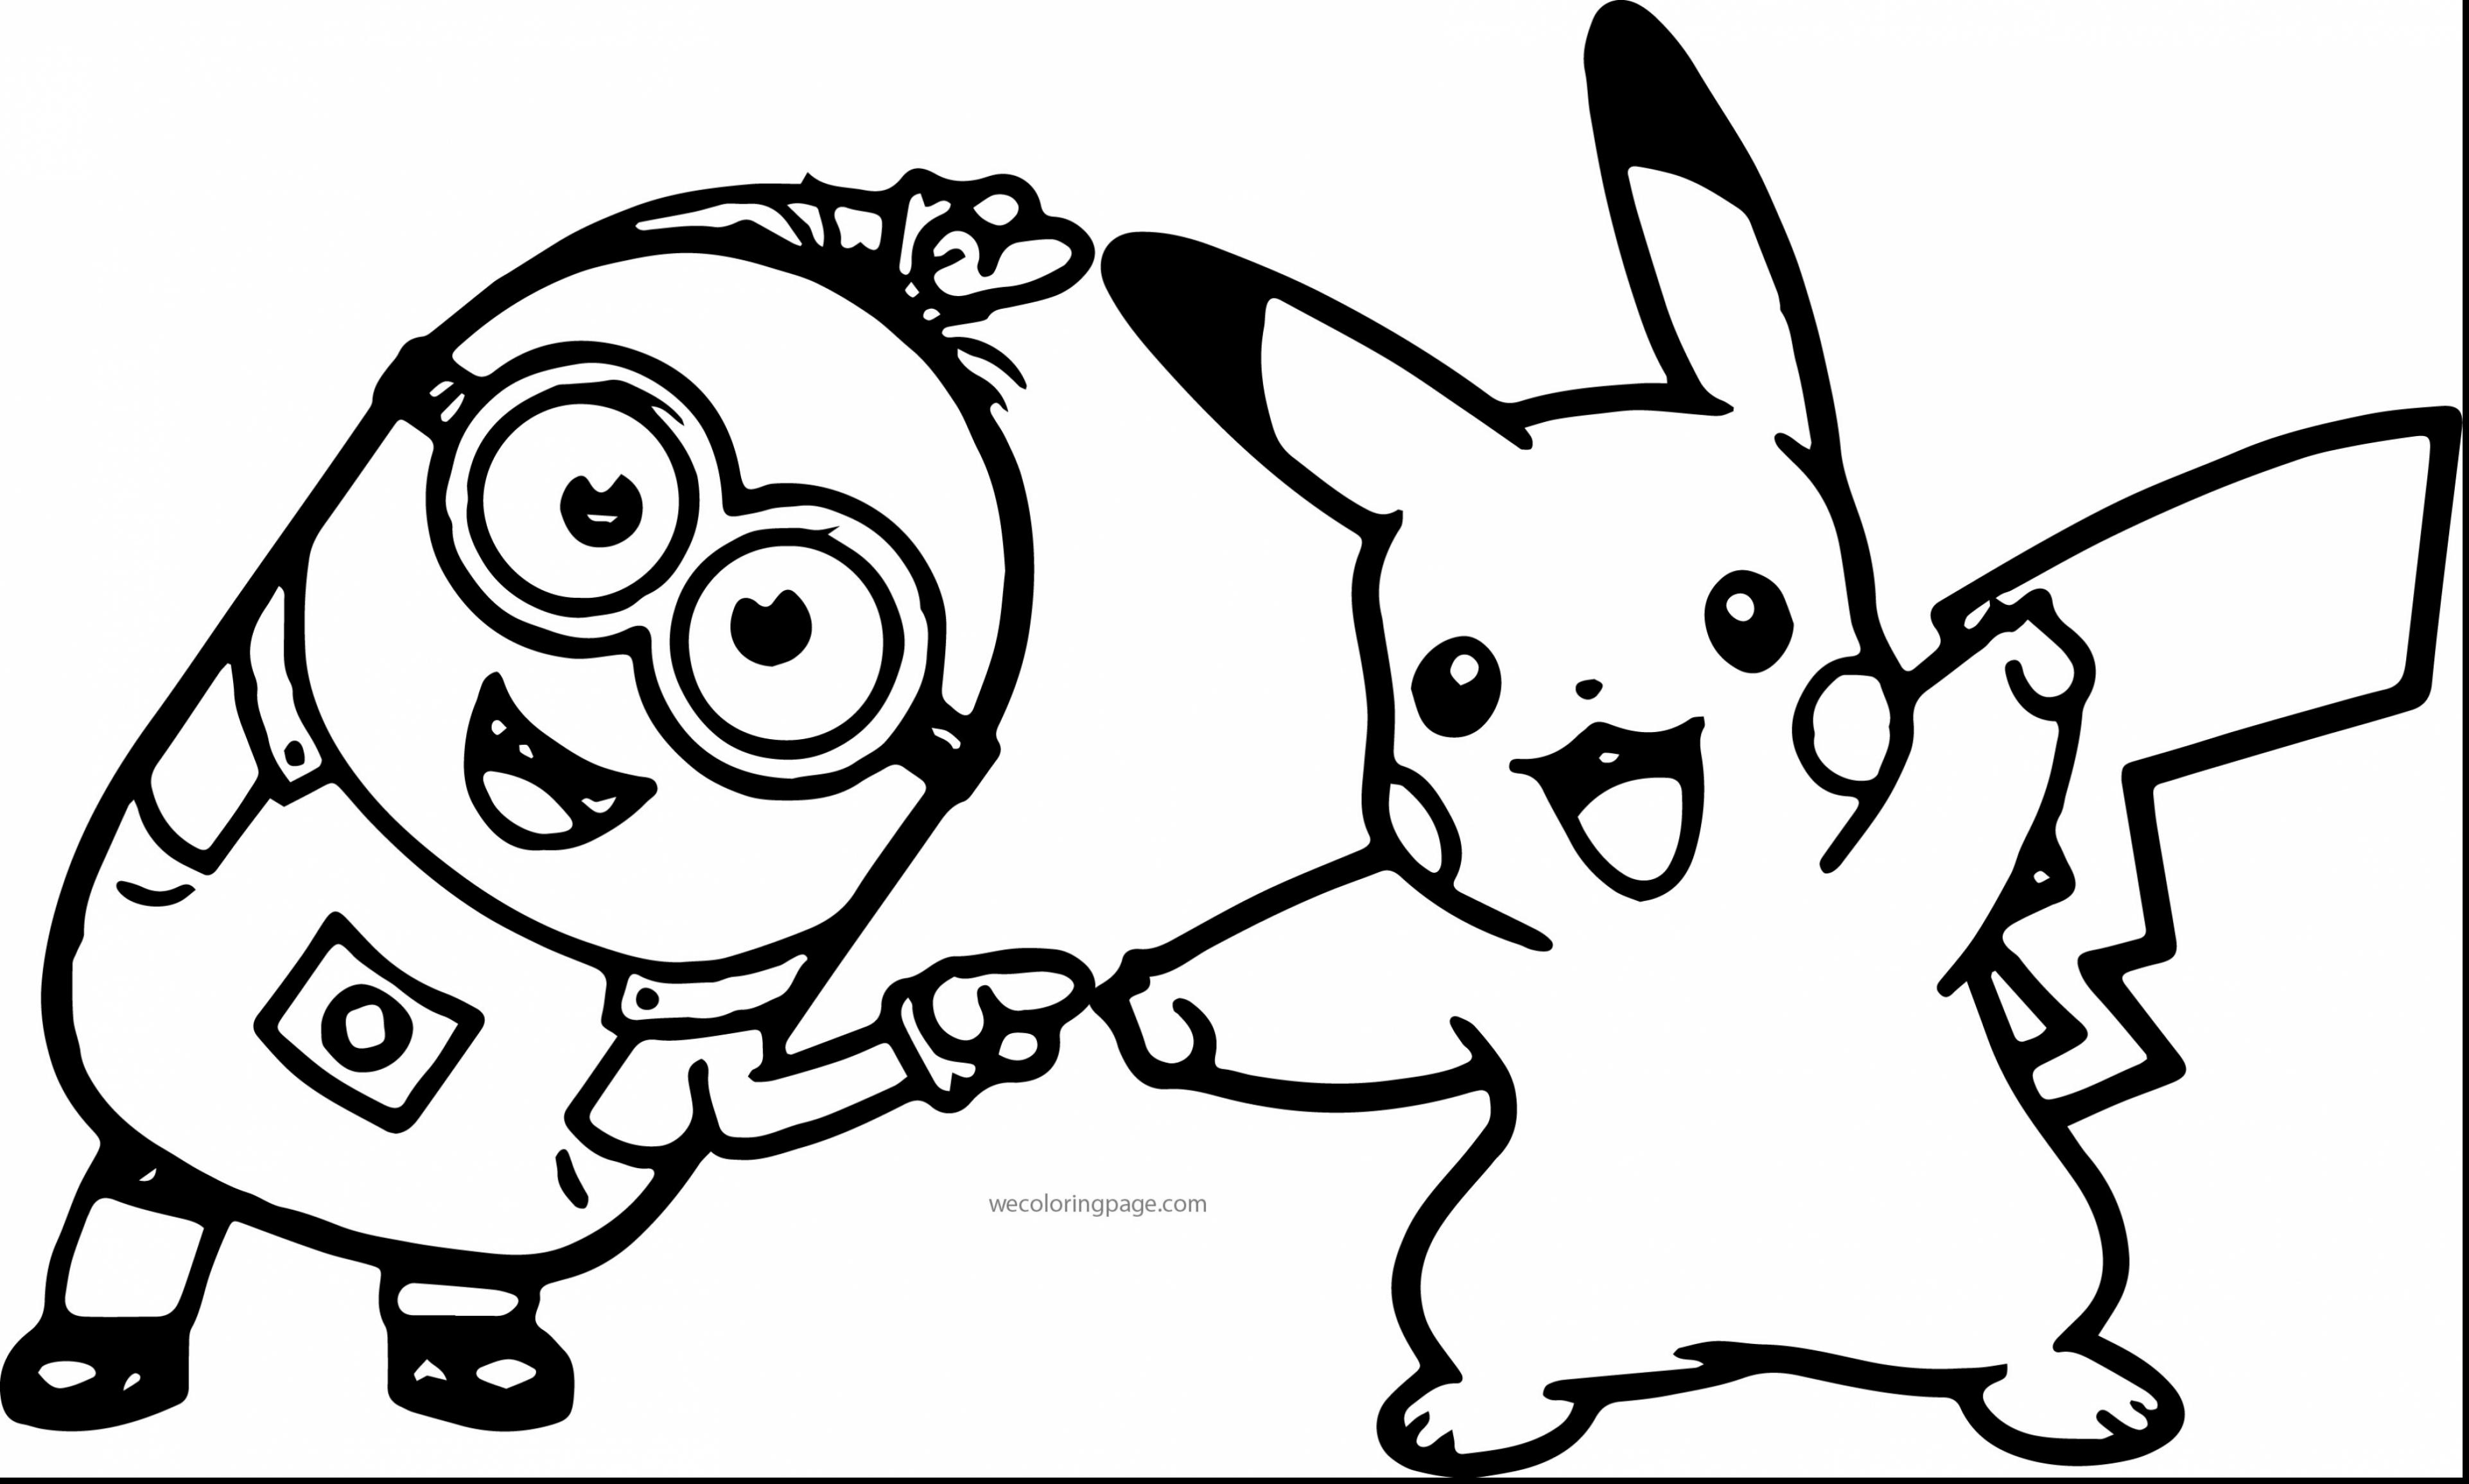 picachu coloring pages get this pokemon pikachu coloring pages yt831 picachu pages coloring